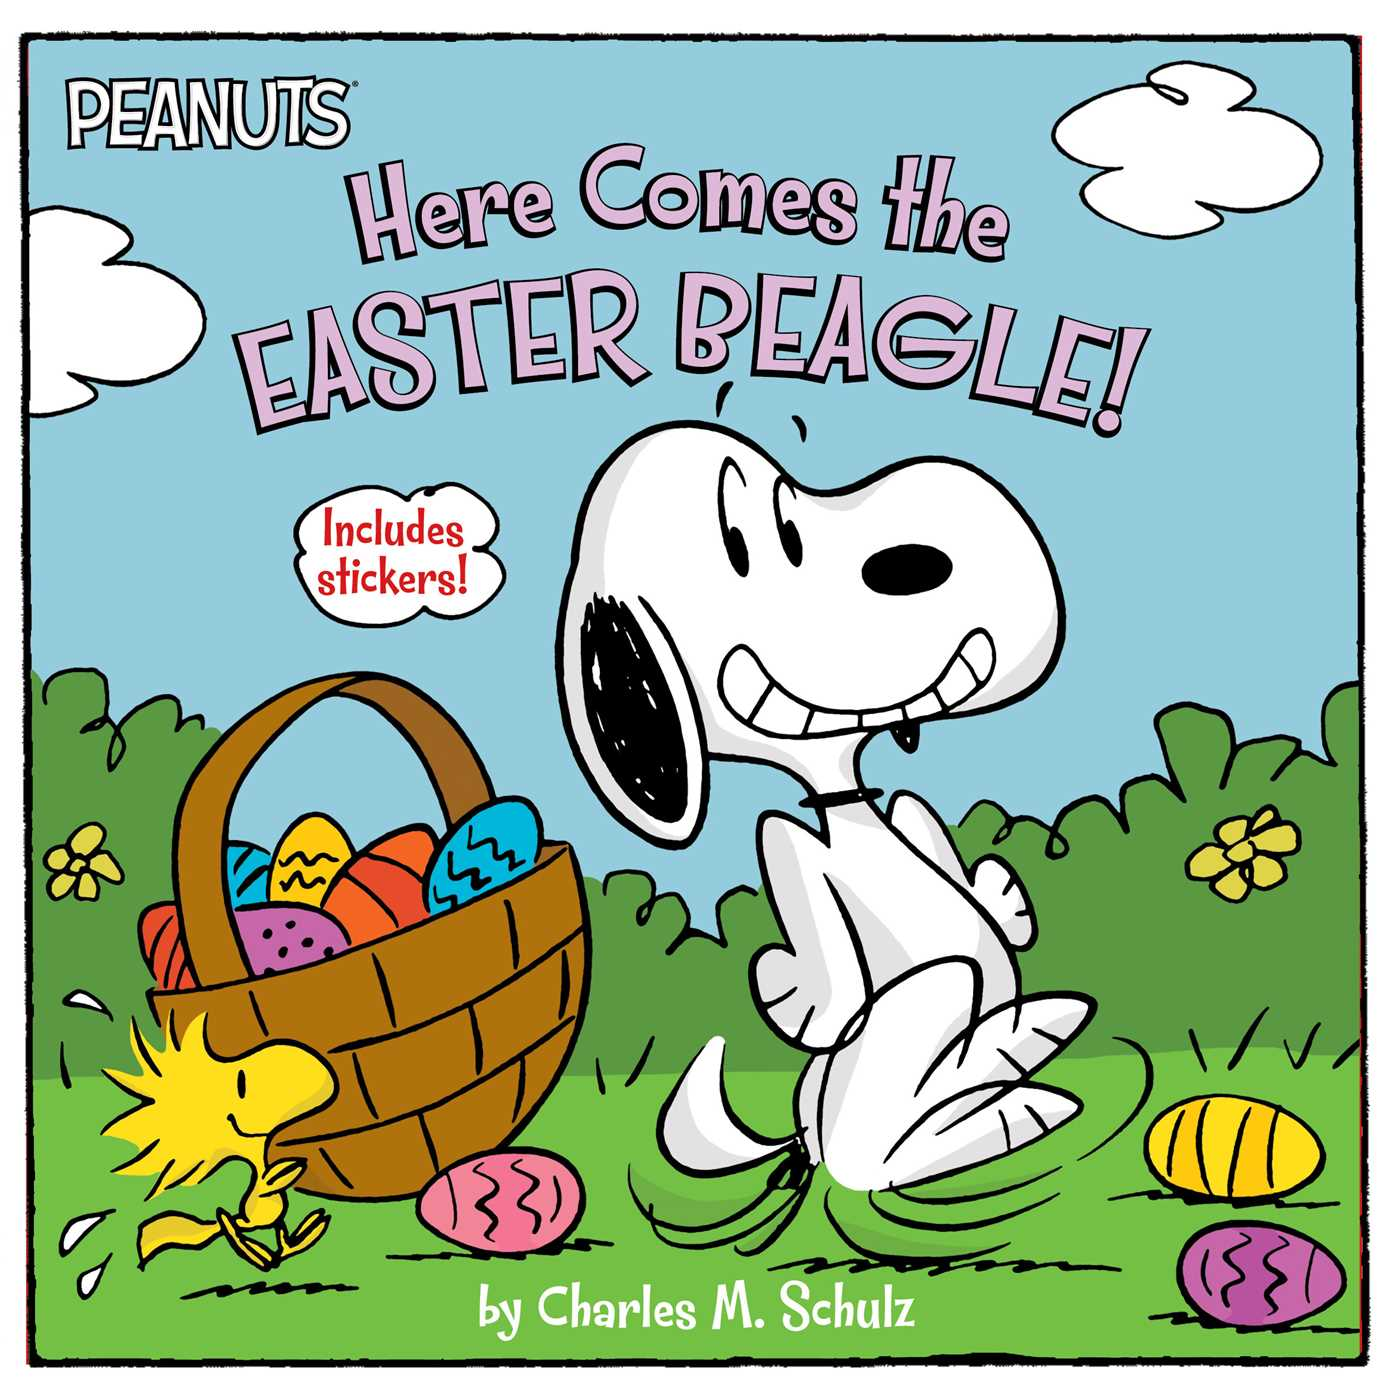 Easter Beagle Clipart at GetDrawings.com.